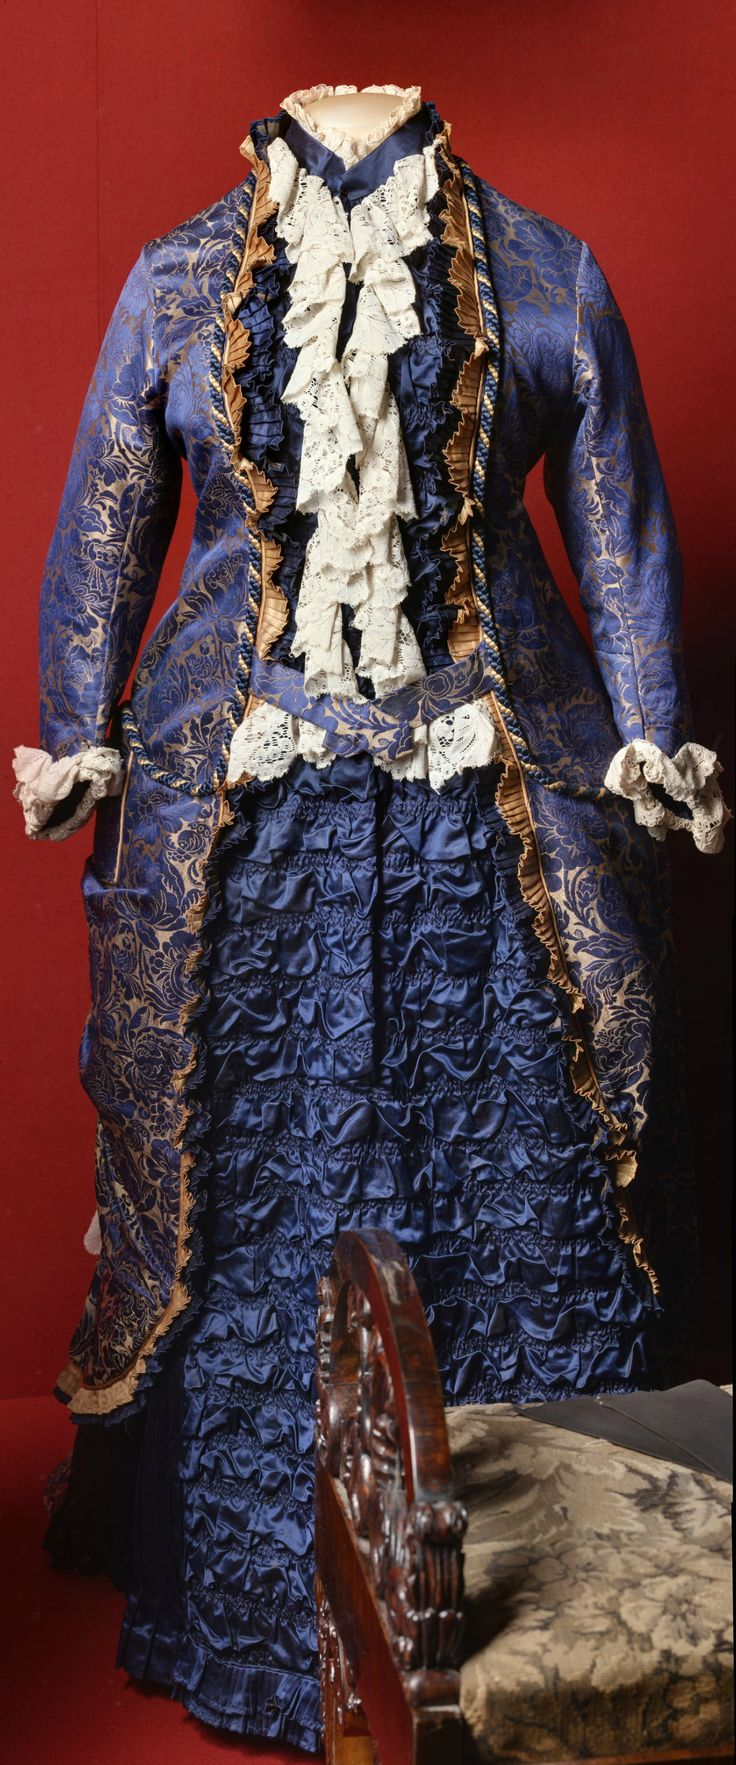 Business dress belonging to lady-in-waiting Princess Tatiana Yusupova, western Europe, 1876-77. Satin brocade, satin, silk cord, tatting. The State Hermitage Museum (link: http://www.hermitage.guide/costume/costume1.html). CLICK FOR LARGER IMAGE.